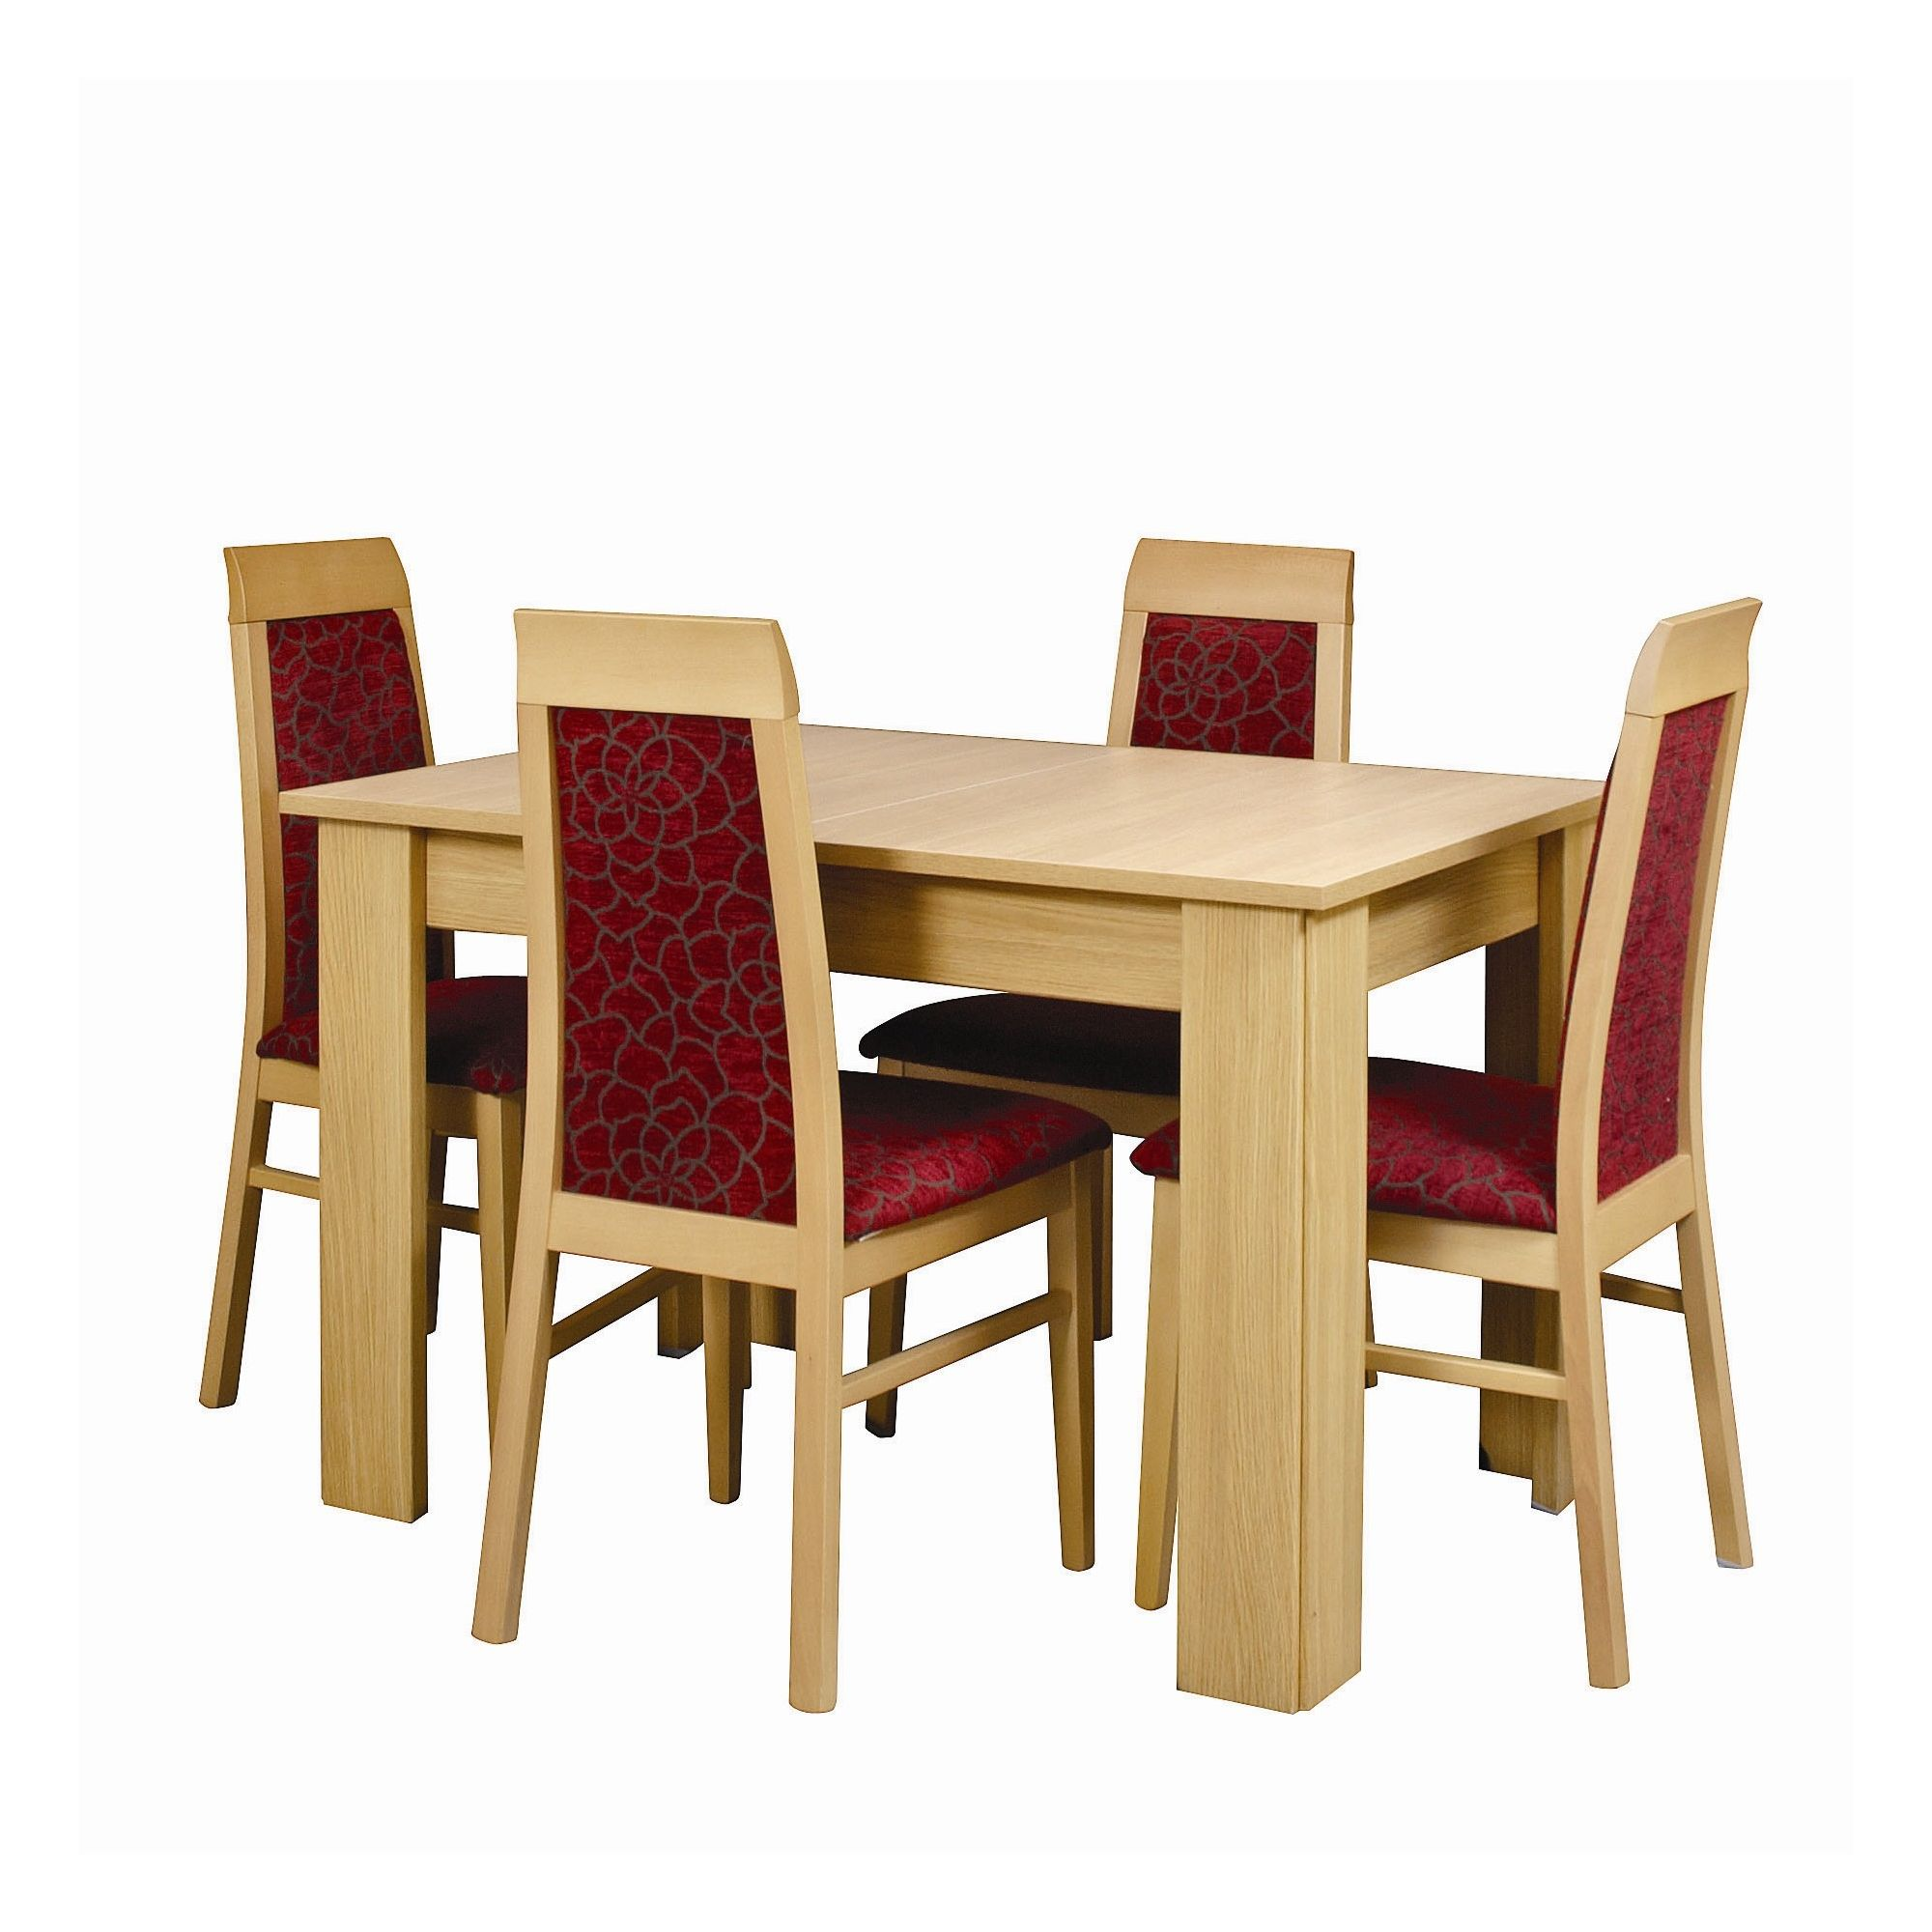 Other Caxton Huxley 4 Leg Compact Extending Dining Table with 6 Chairs in Light Oak